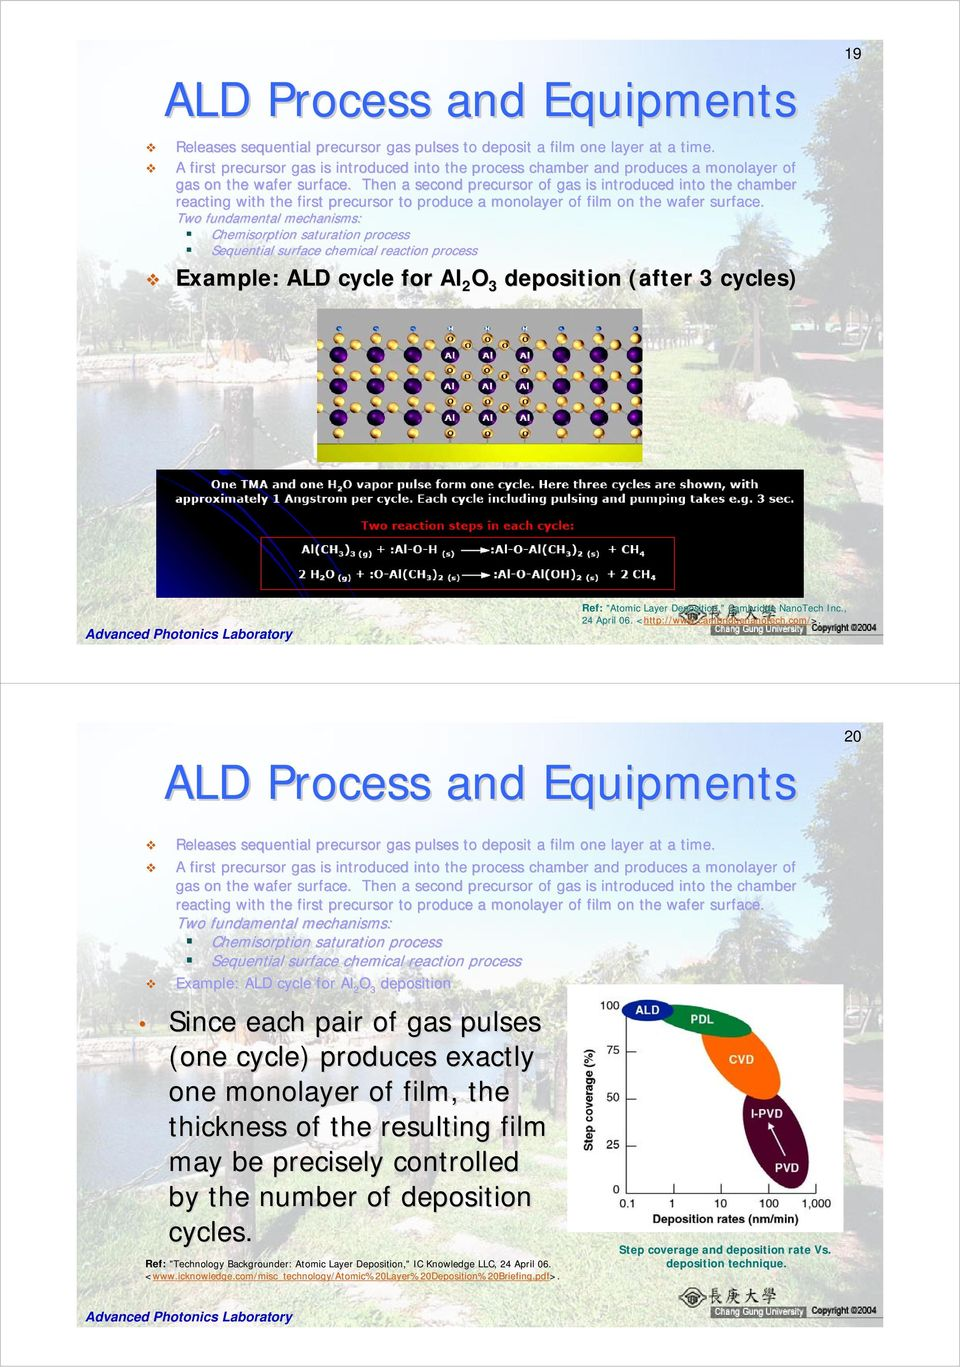 "Example: ALD cycle for Al 2 O 3 deposition (after 3 cycles) 19 Ref: ""Atomic Layer Deposition,"" Cambridge NanoTech Inc., 24 April 06. <http:// < http://www.cambridgenanotech.com/>."